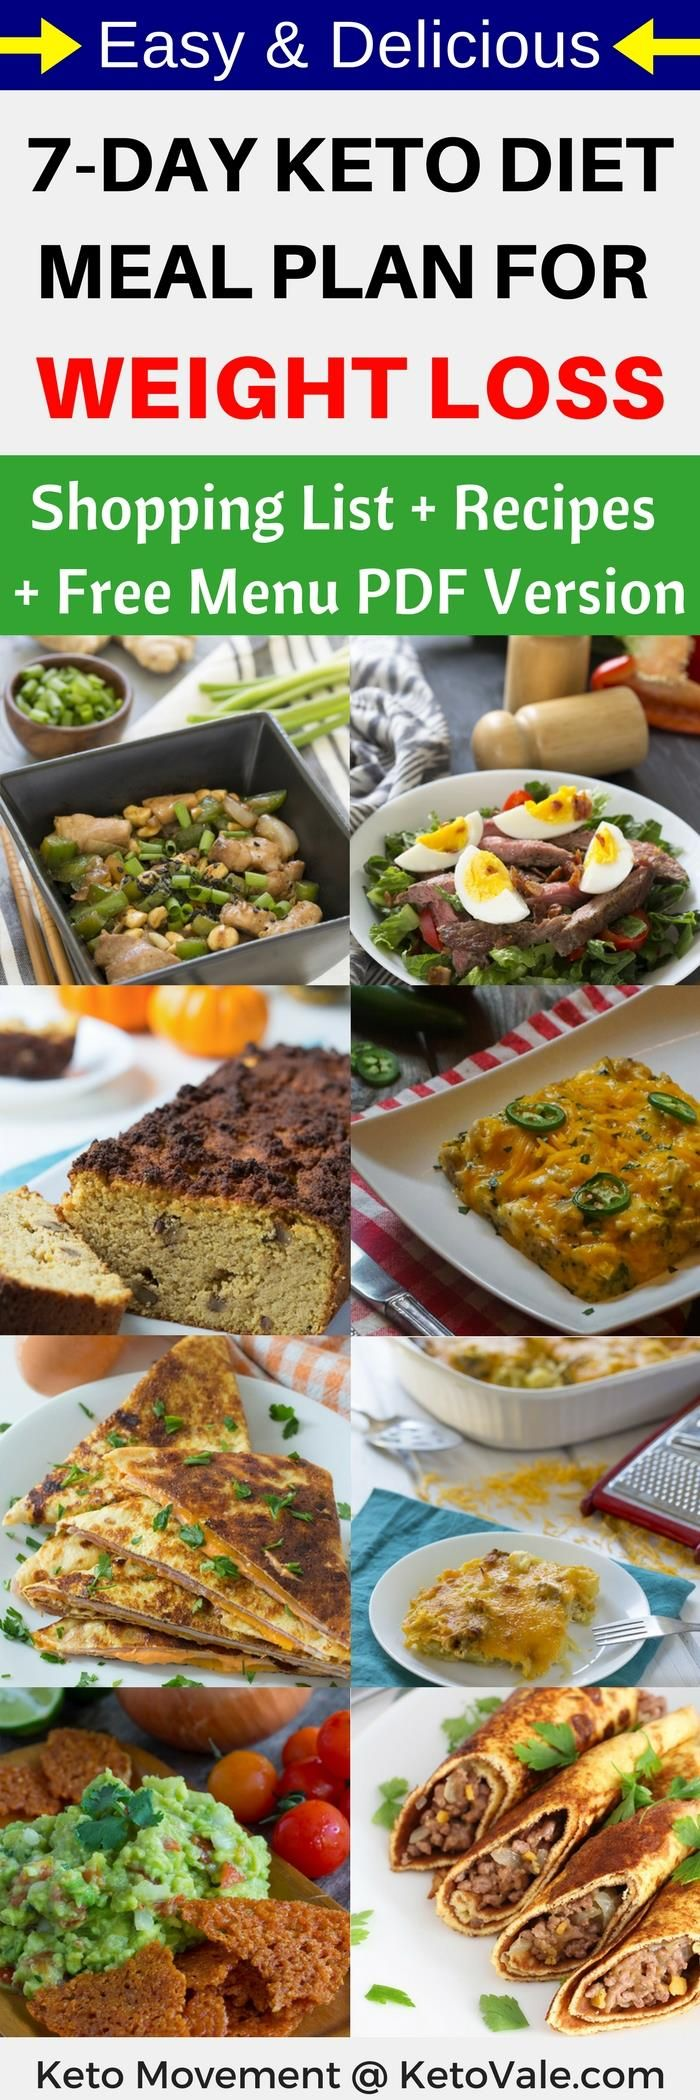 We are giving away a 7-Day Keto Diet Weight Loss Meal Plan, check part 2 of this page for more!